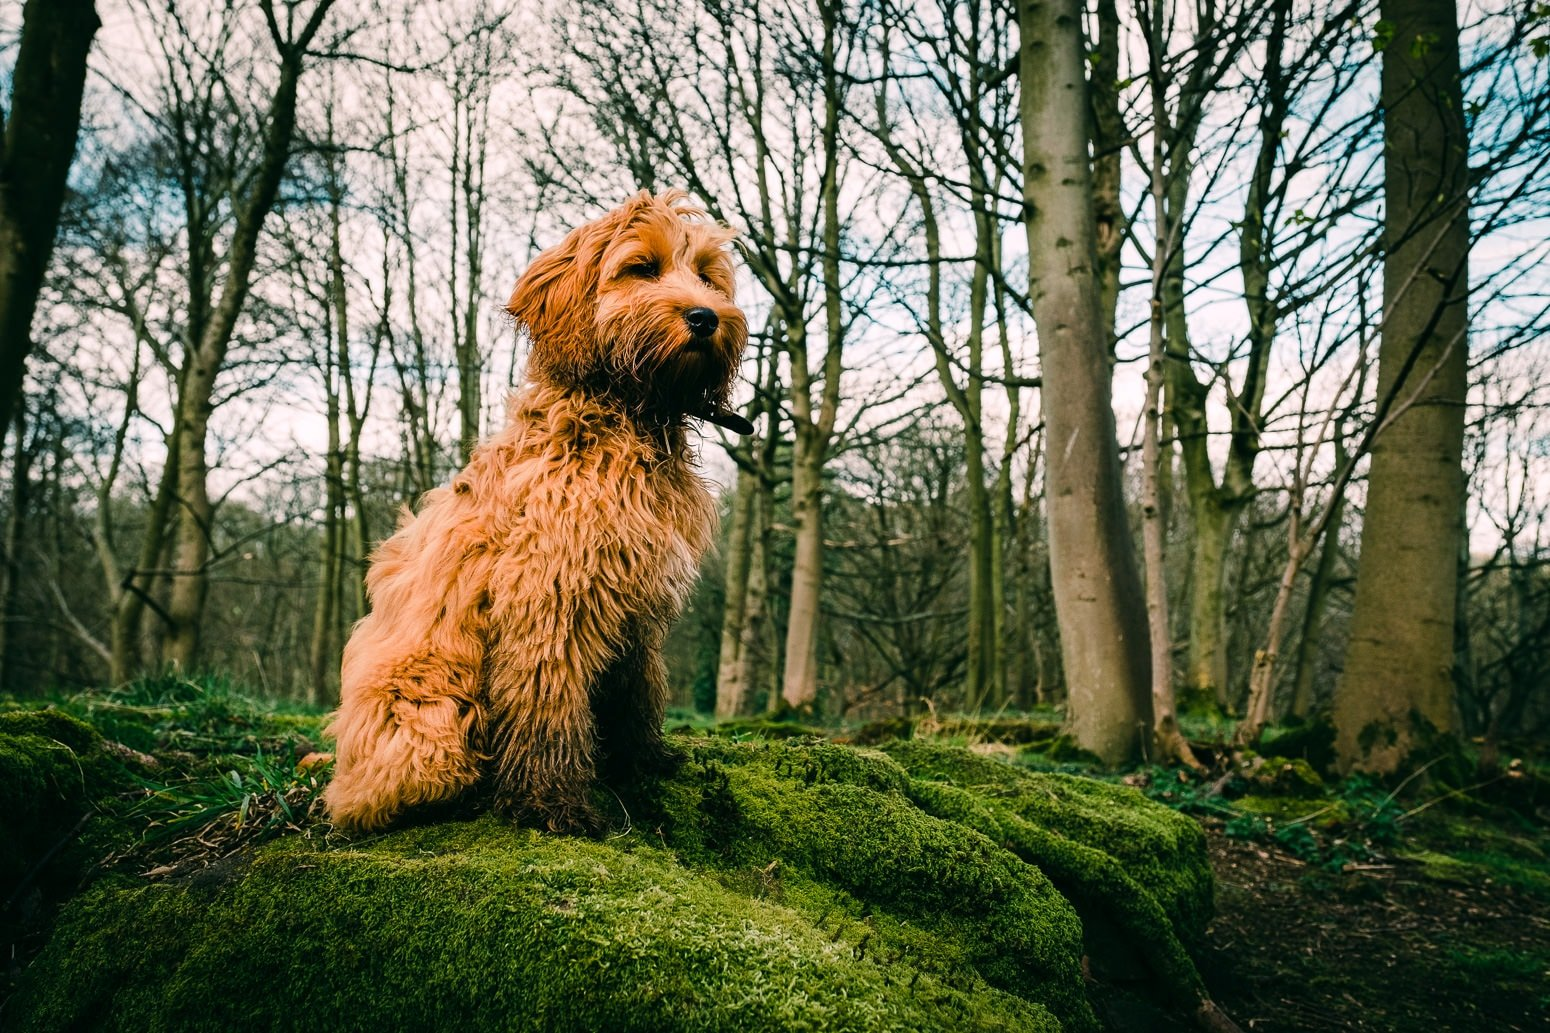 Cockerpoo puppy on a hill in the forest